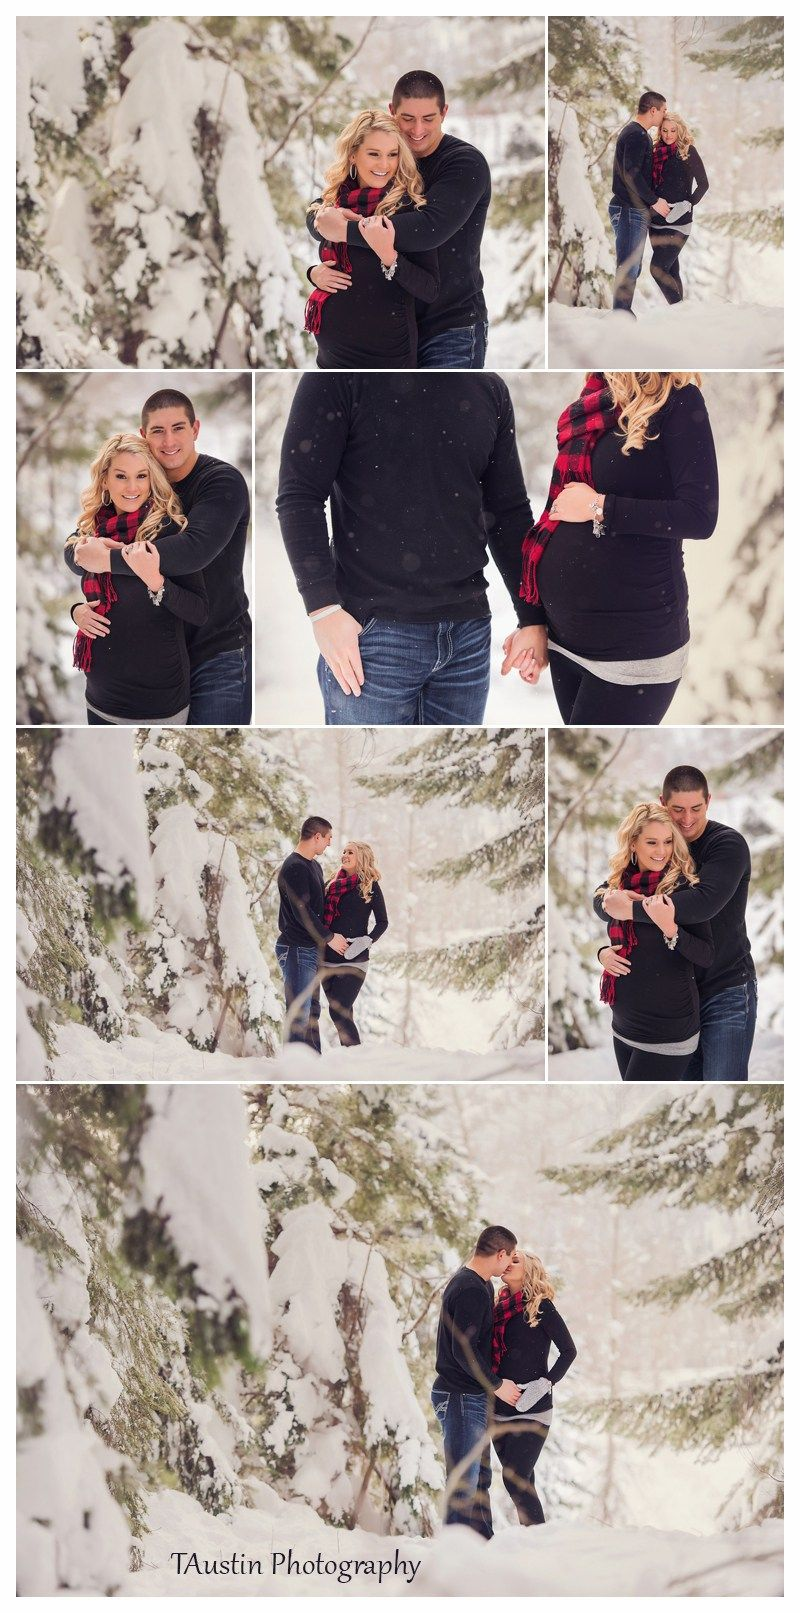 18 absolutely amazing maternity photo shoot ideas pregnancy babies parenting fun